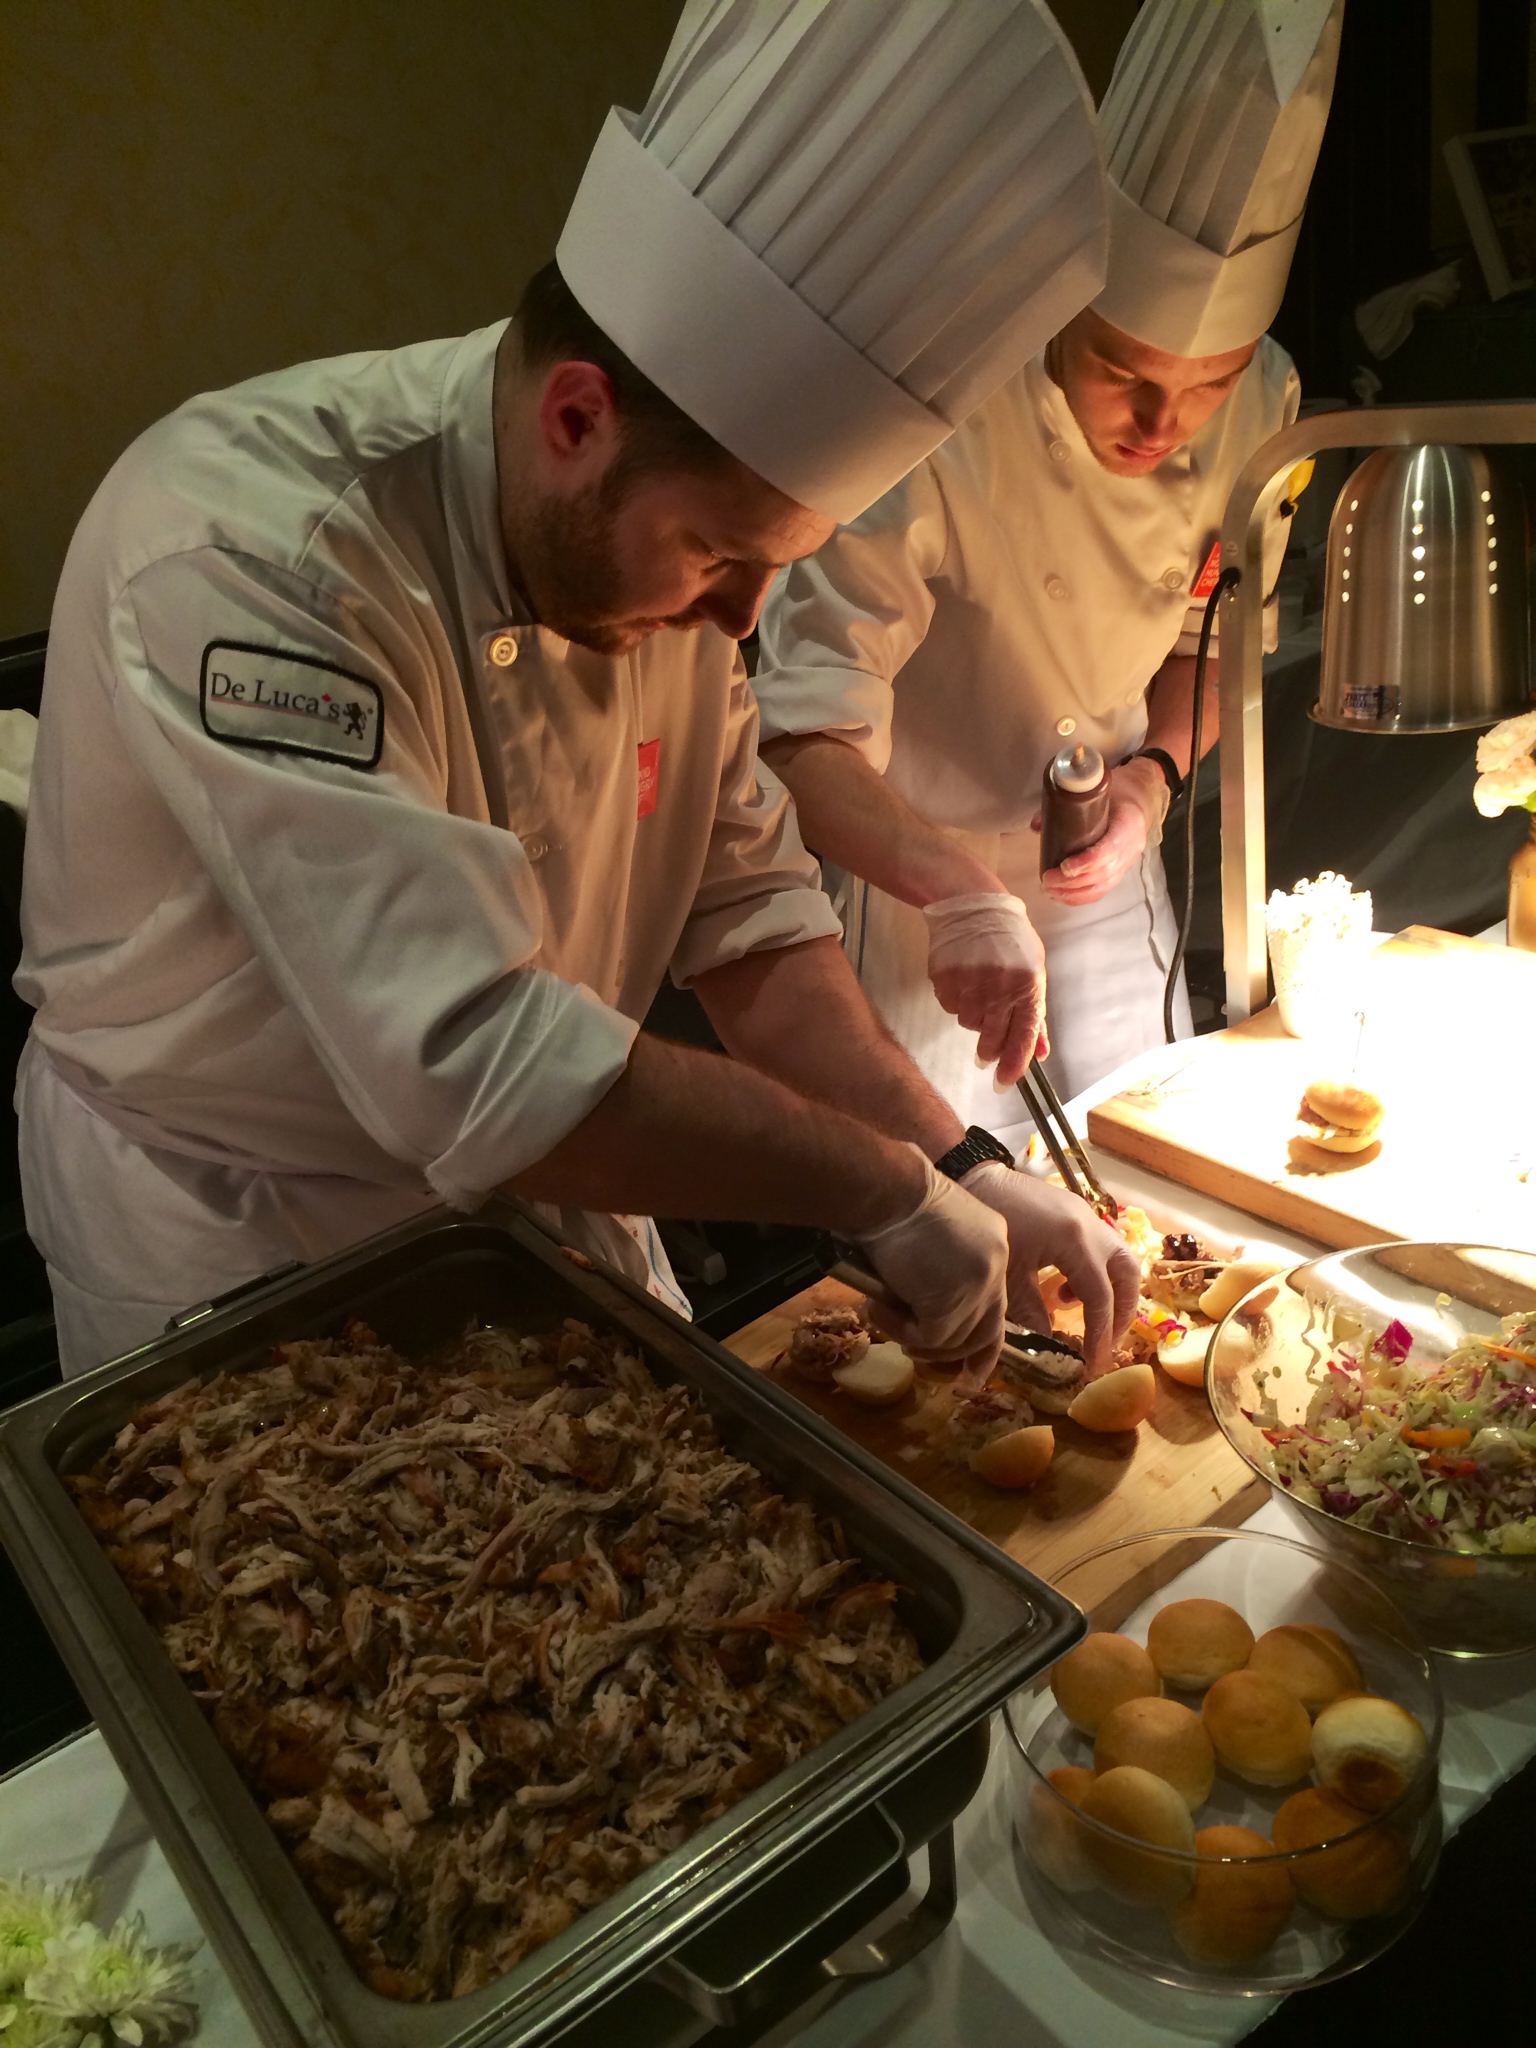 De Luca's chefs making delectable goodies.